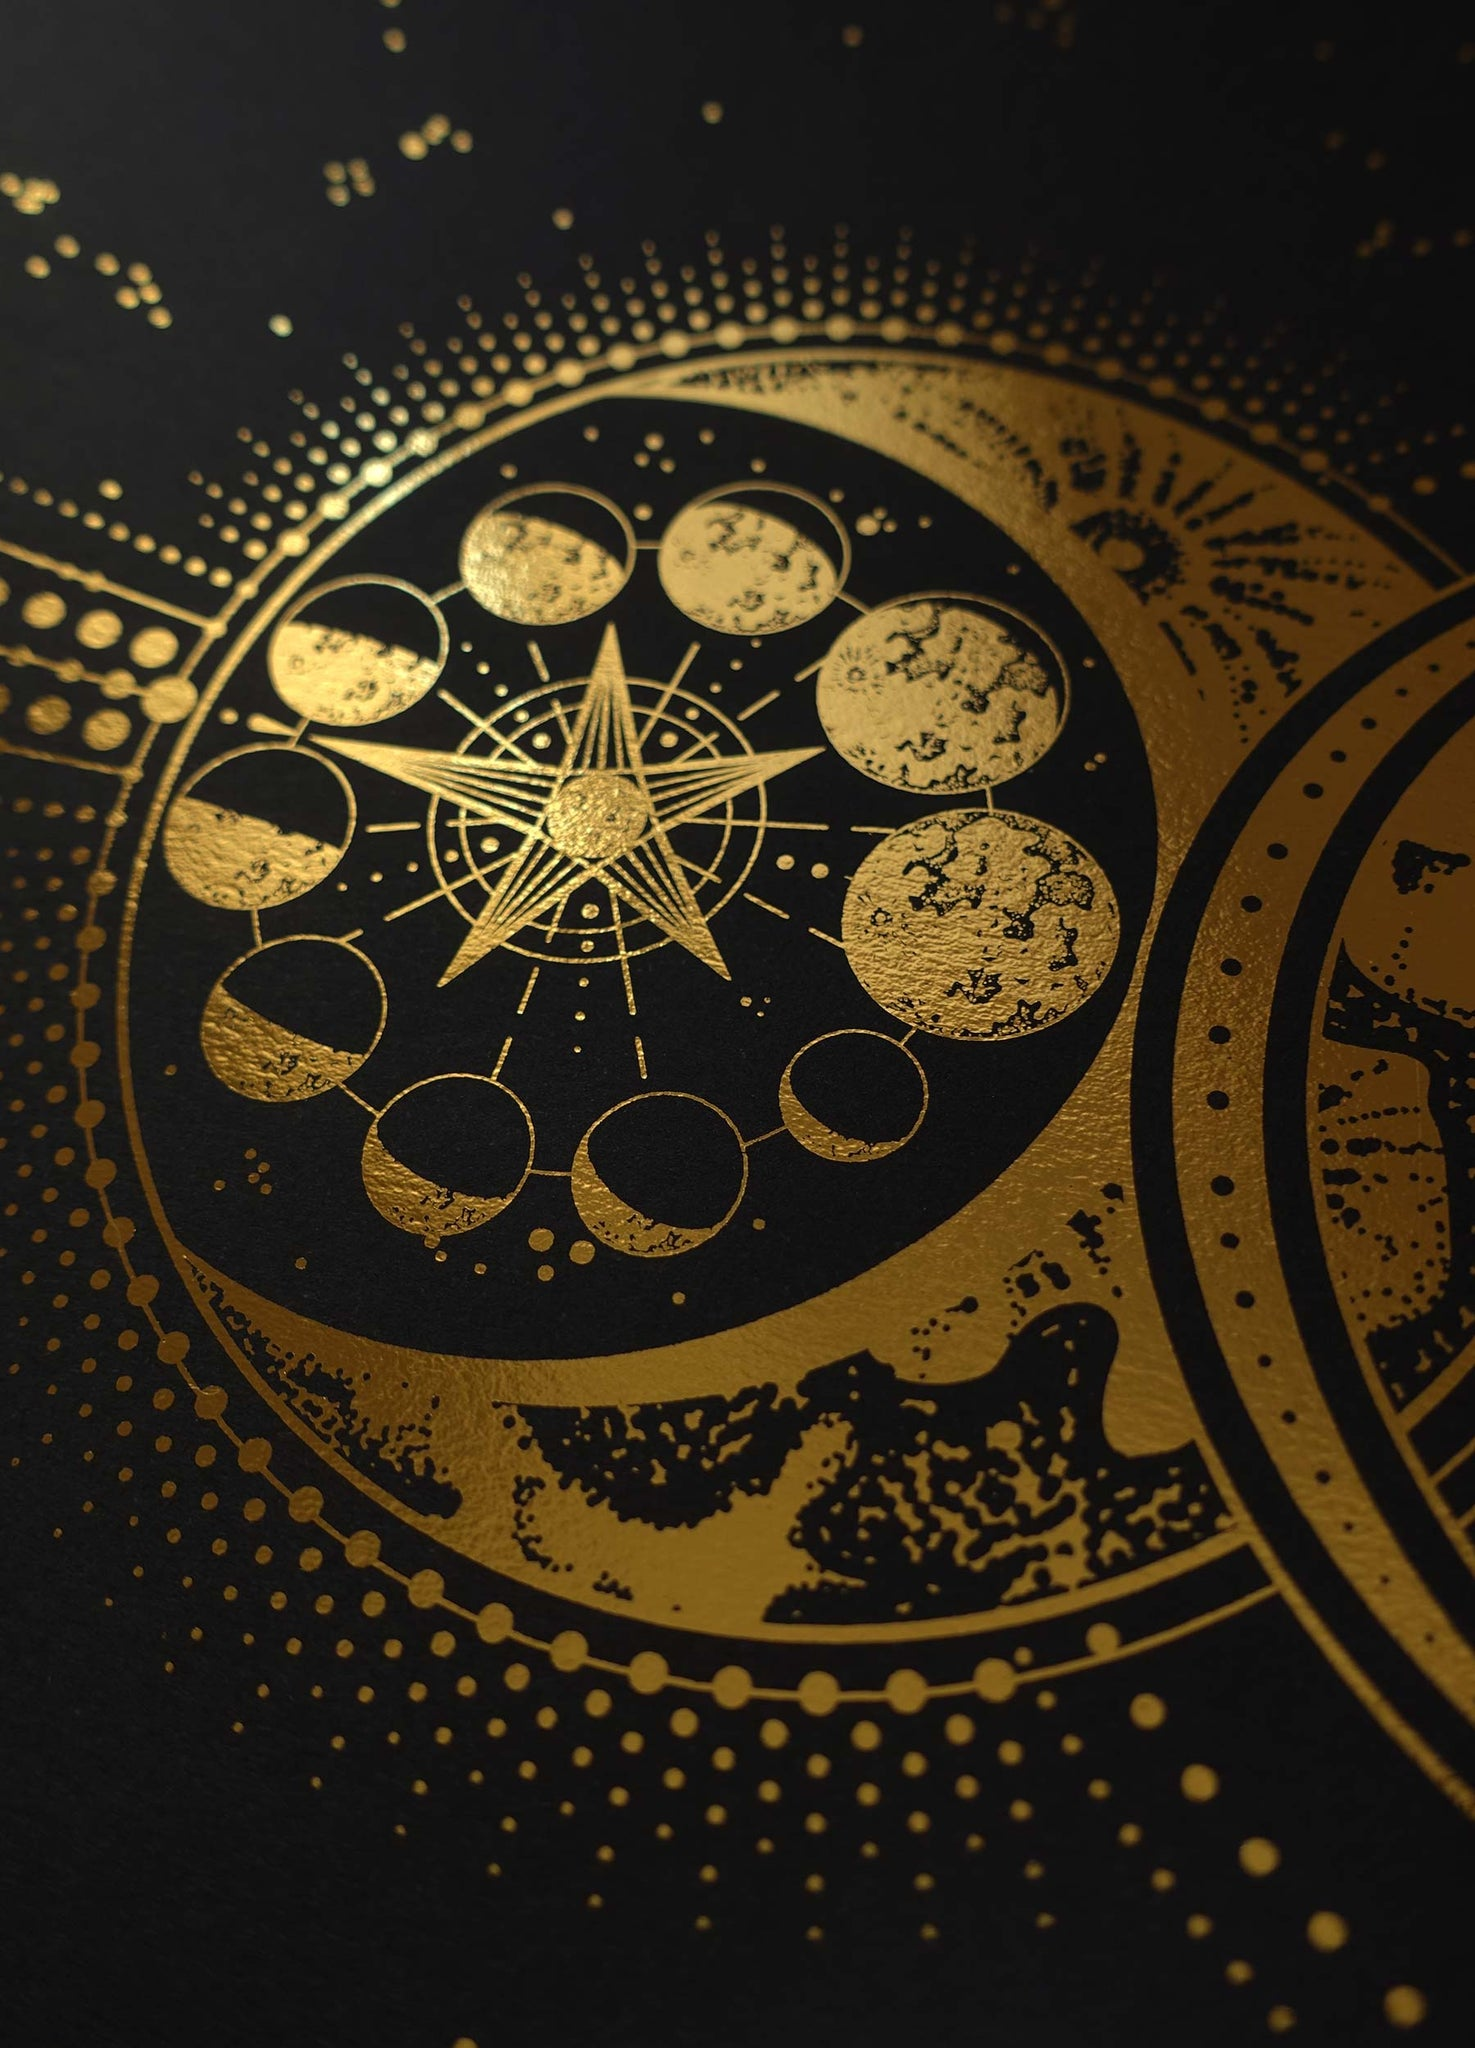 The Devil's Moon artwork print on black paper with gold foil and stars by Cocorrina studio.